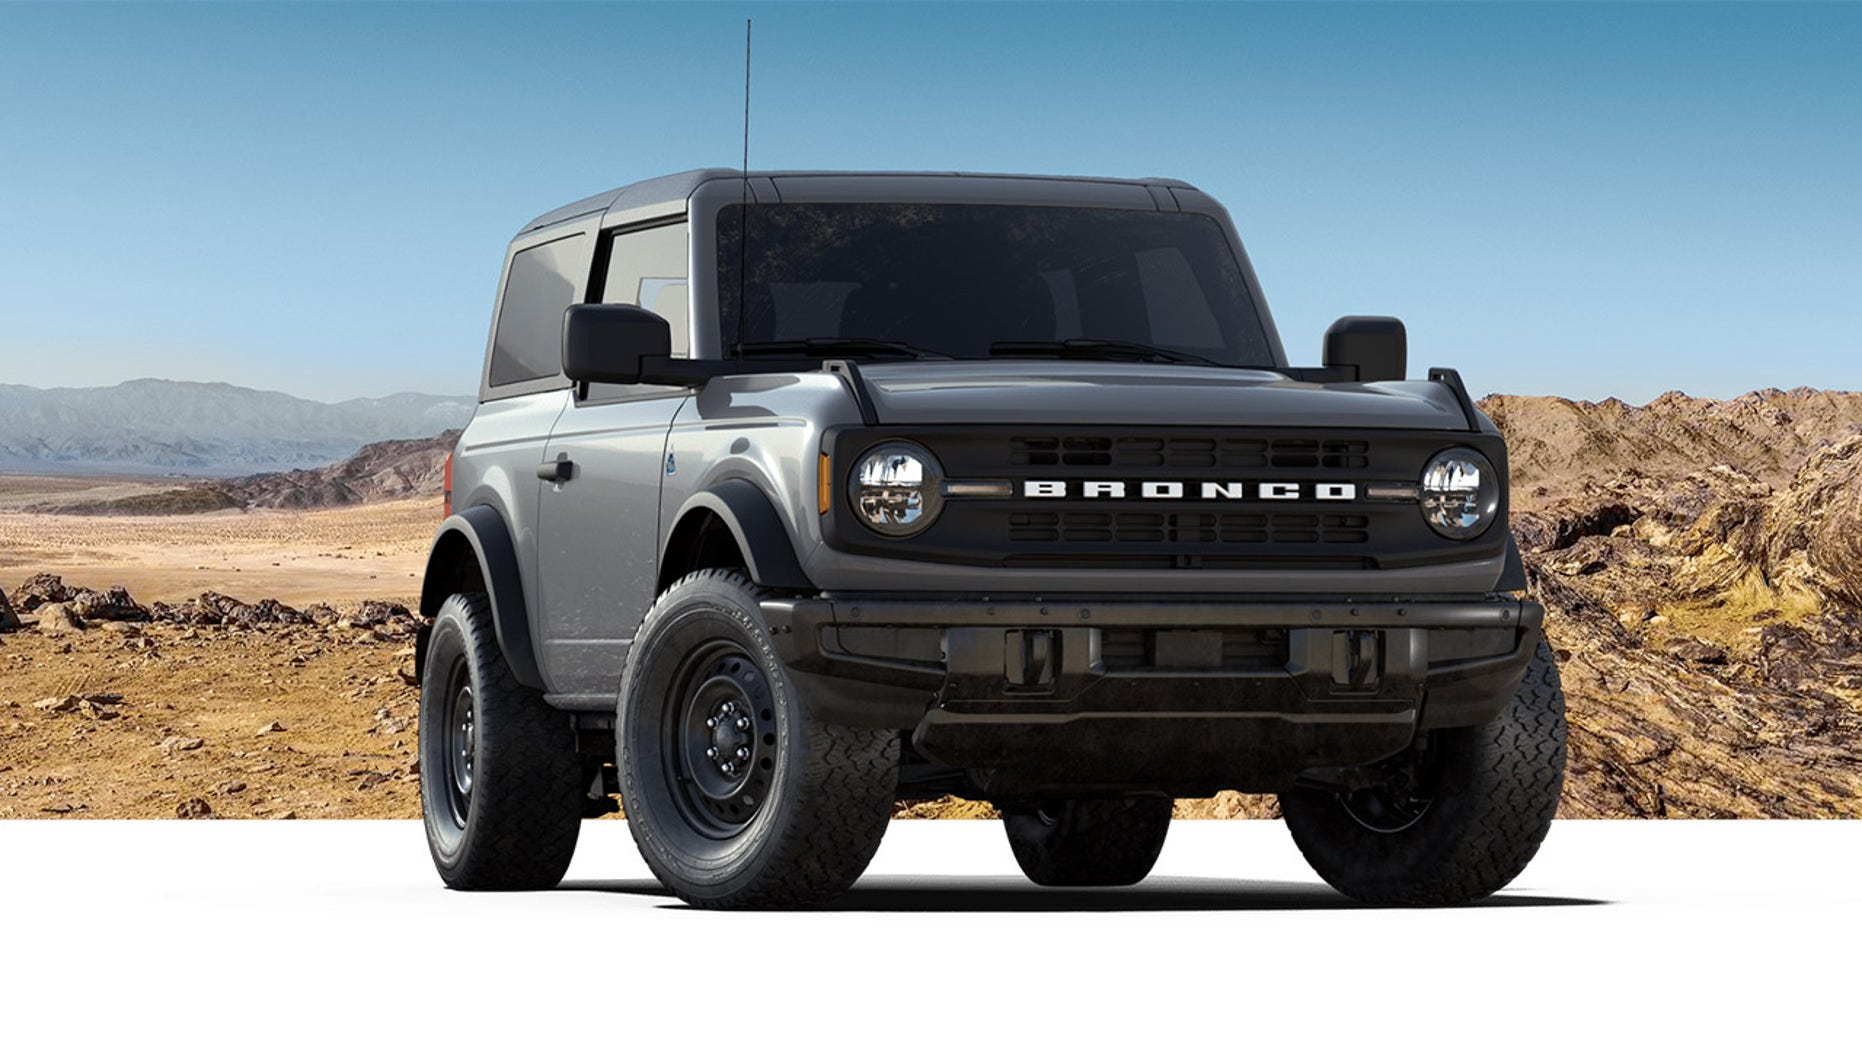 2021 Ford Bronco models cost